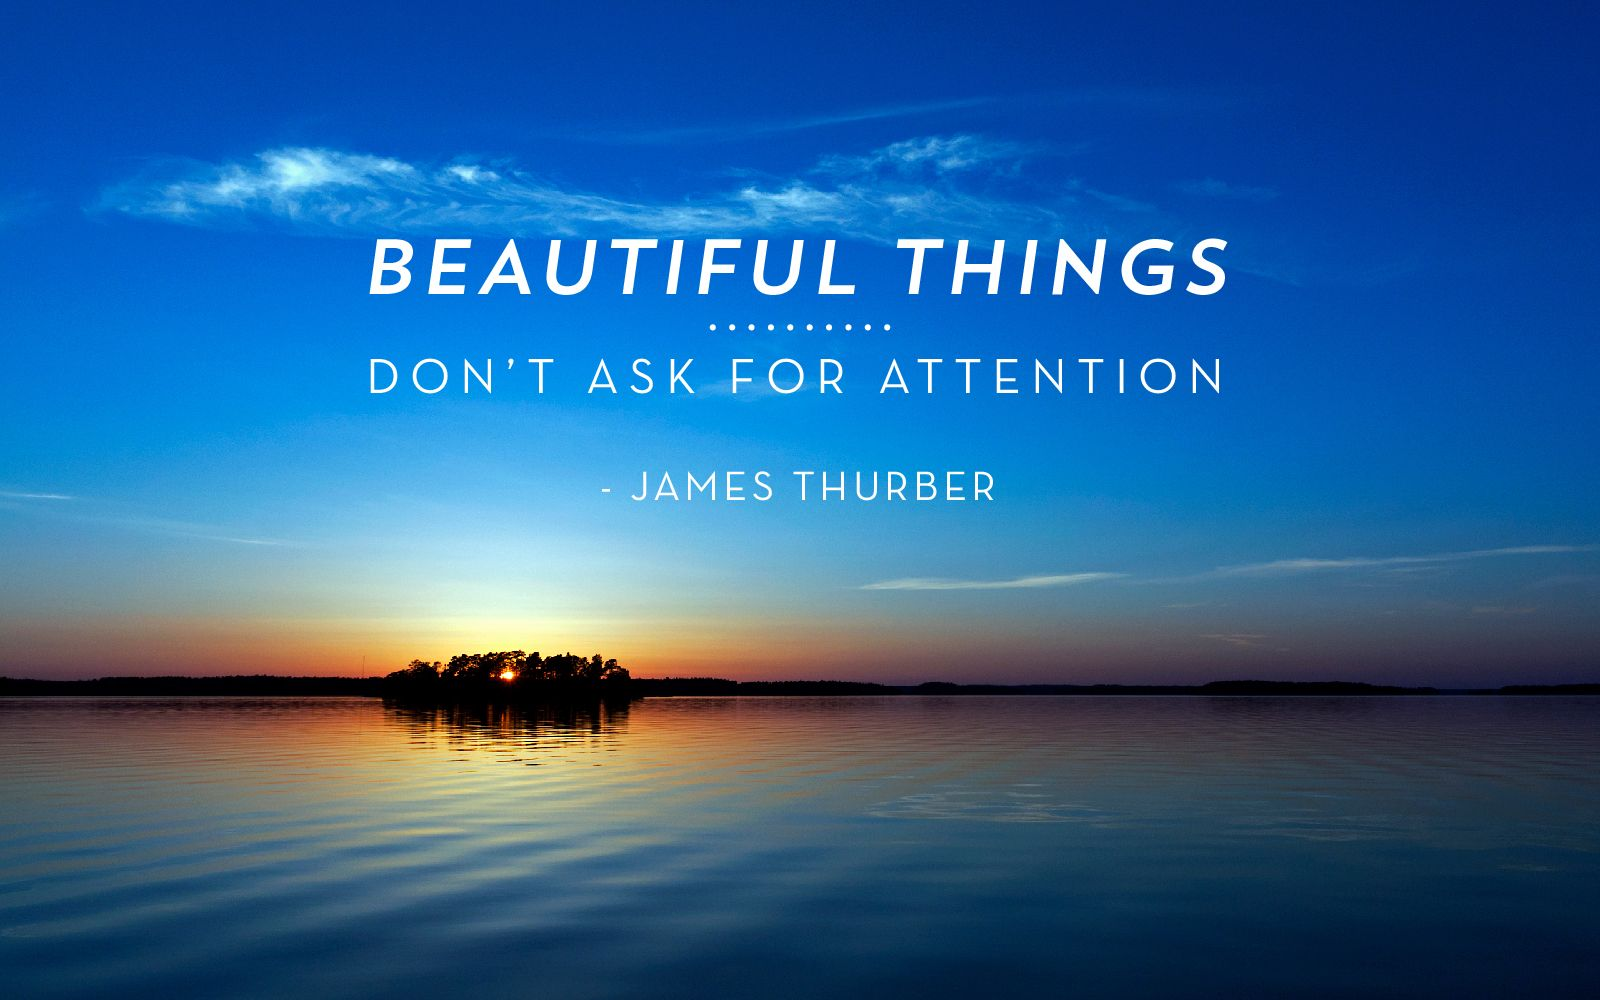 The Secret Life Of Walter Mitty Quote Hd Wallpapers Quot Beautiful Things Don T Ask For Attention Quot James Thurber